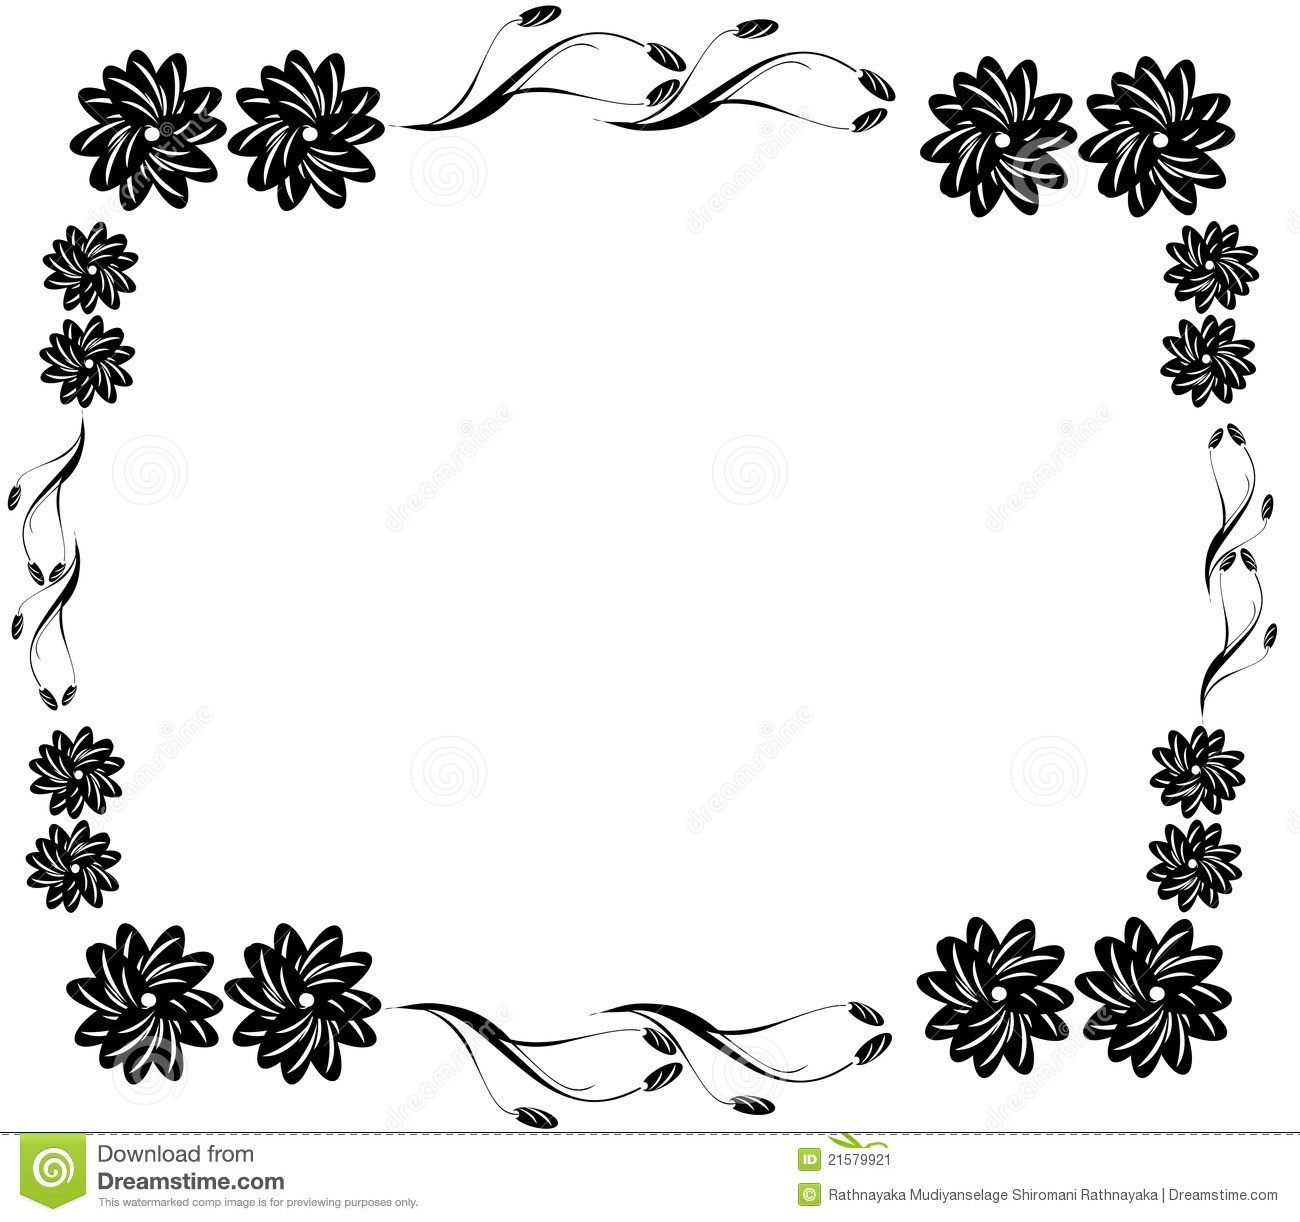 Decorative black flower border stock illustration illustration of decorative black flower border mightylinksfo Image collections